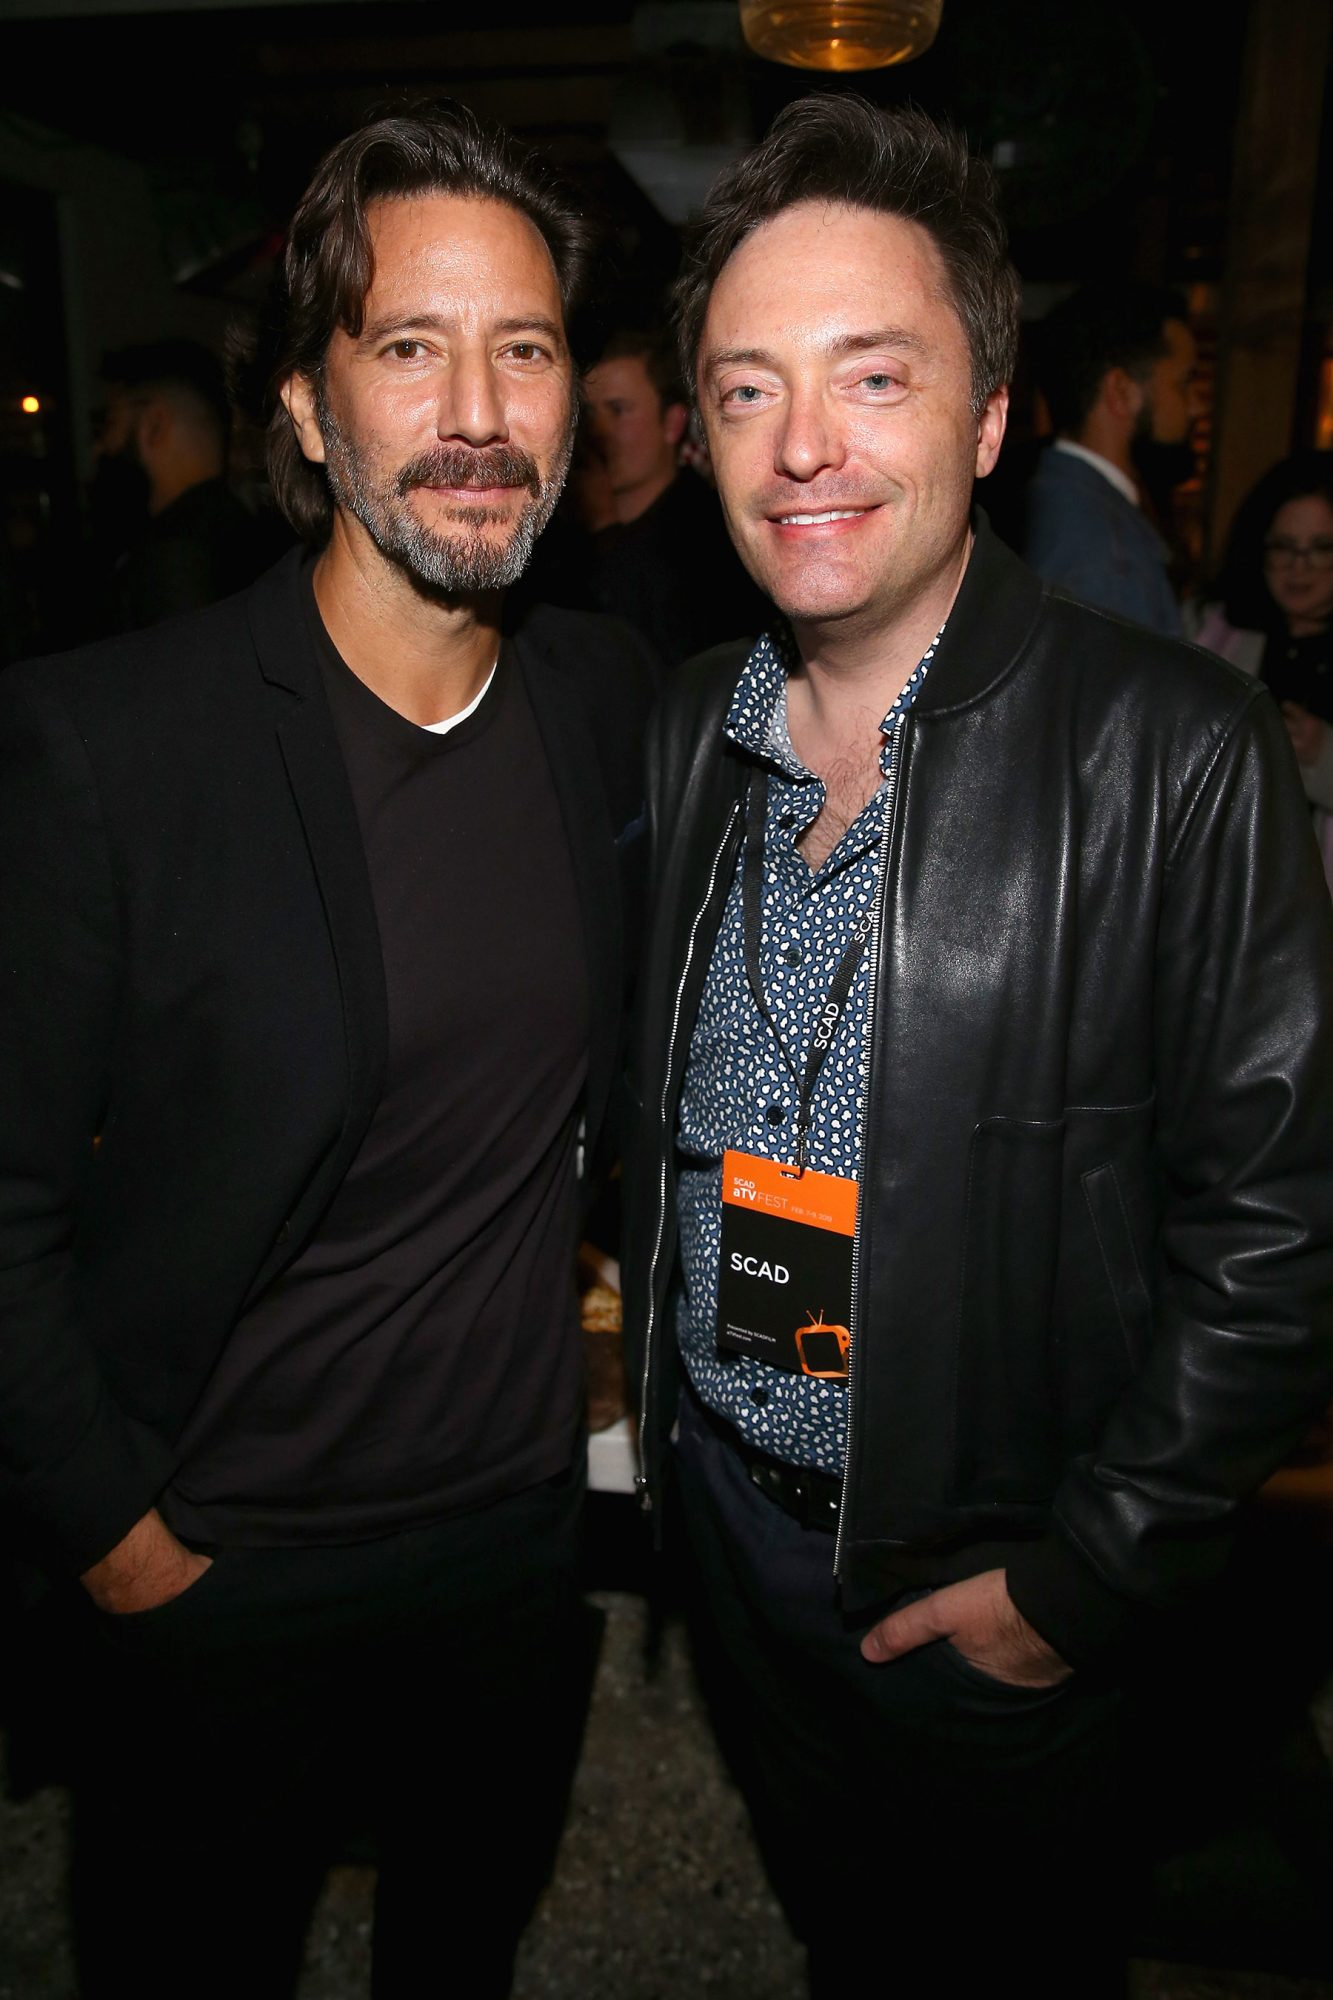 The Passage star Henry Ian Cusick (left) at the SCAD aTVfest and Entertainment Weekly party at Lure